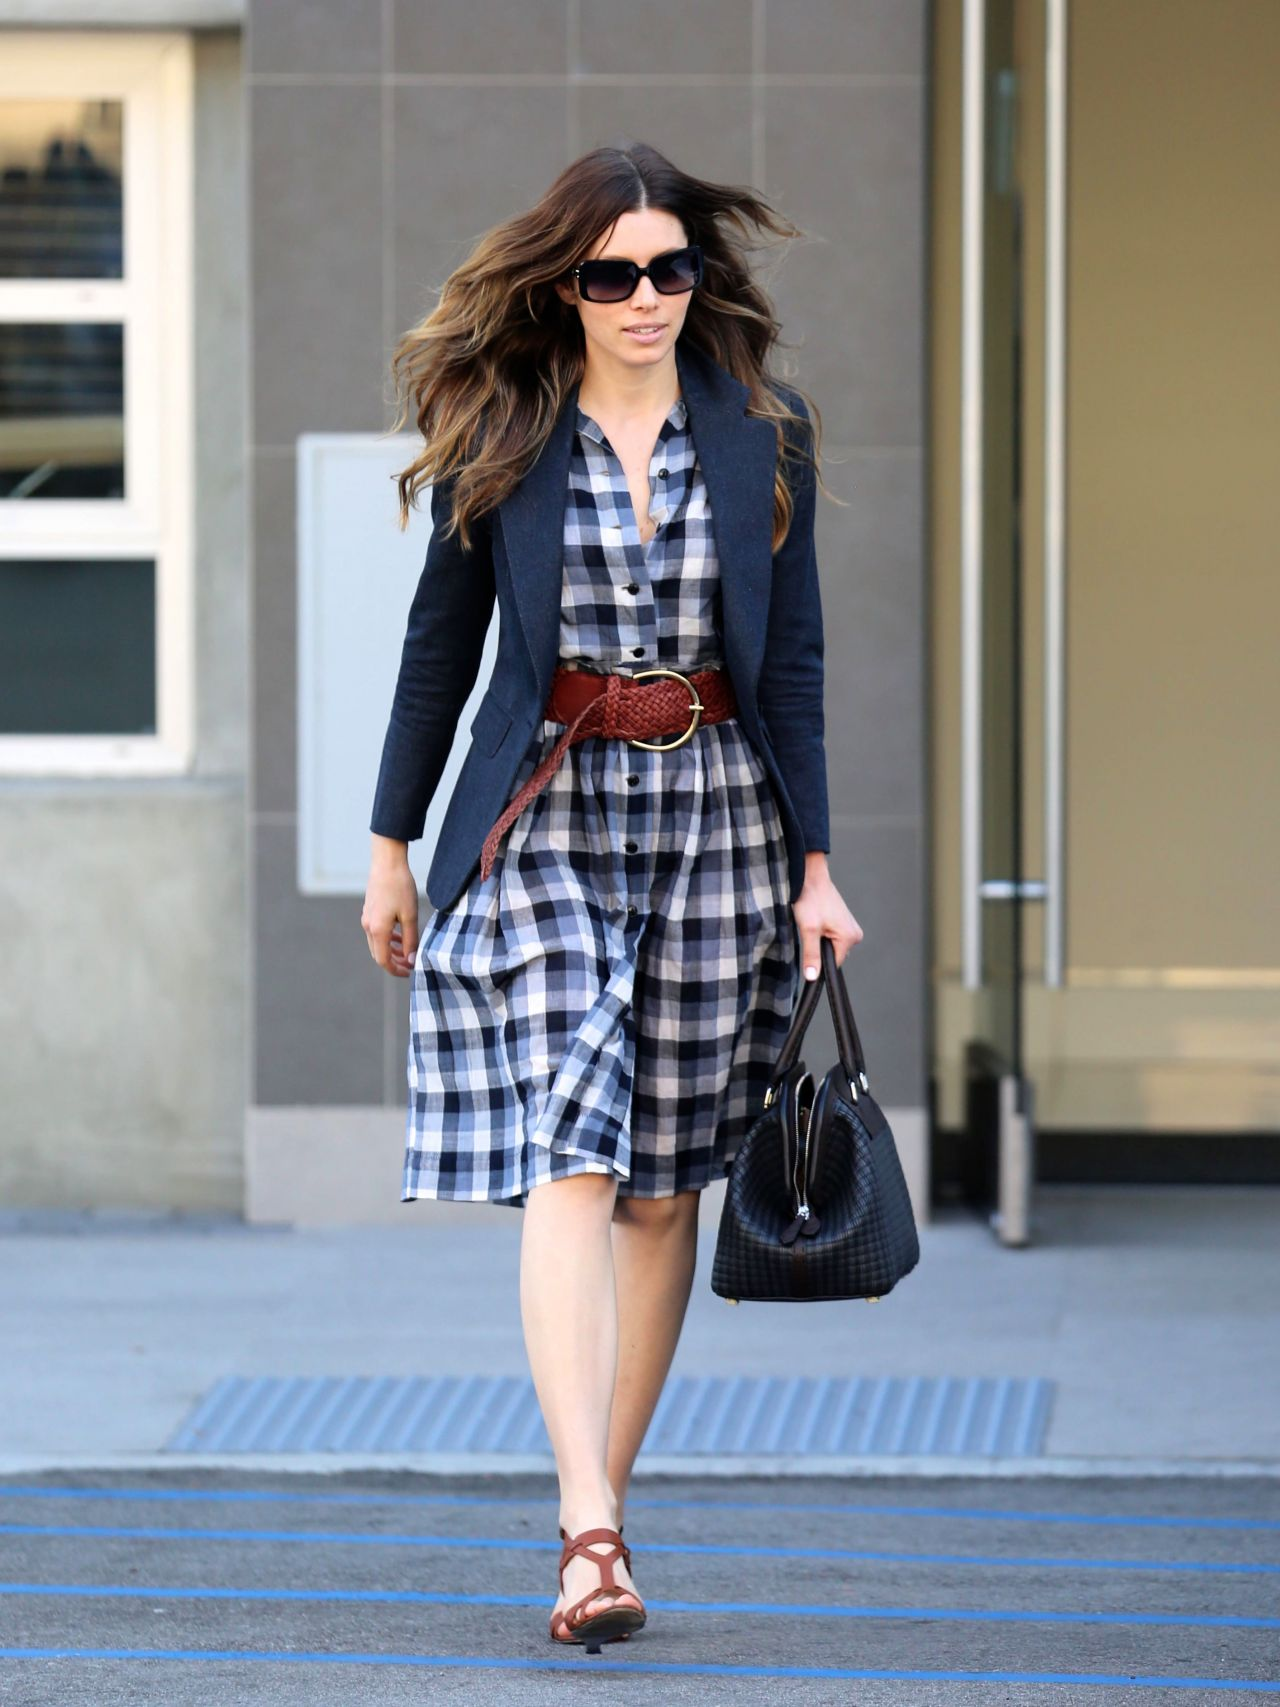 Jessica Biel in Belted Plaid Dress - Out and About in Santa Monica